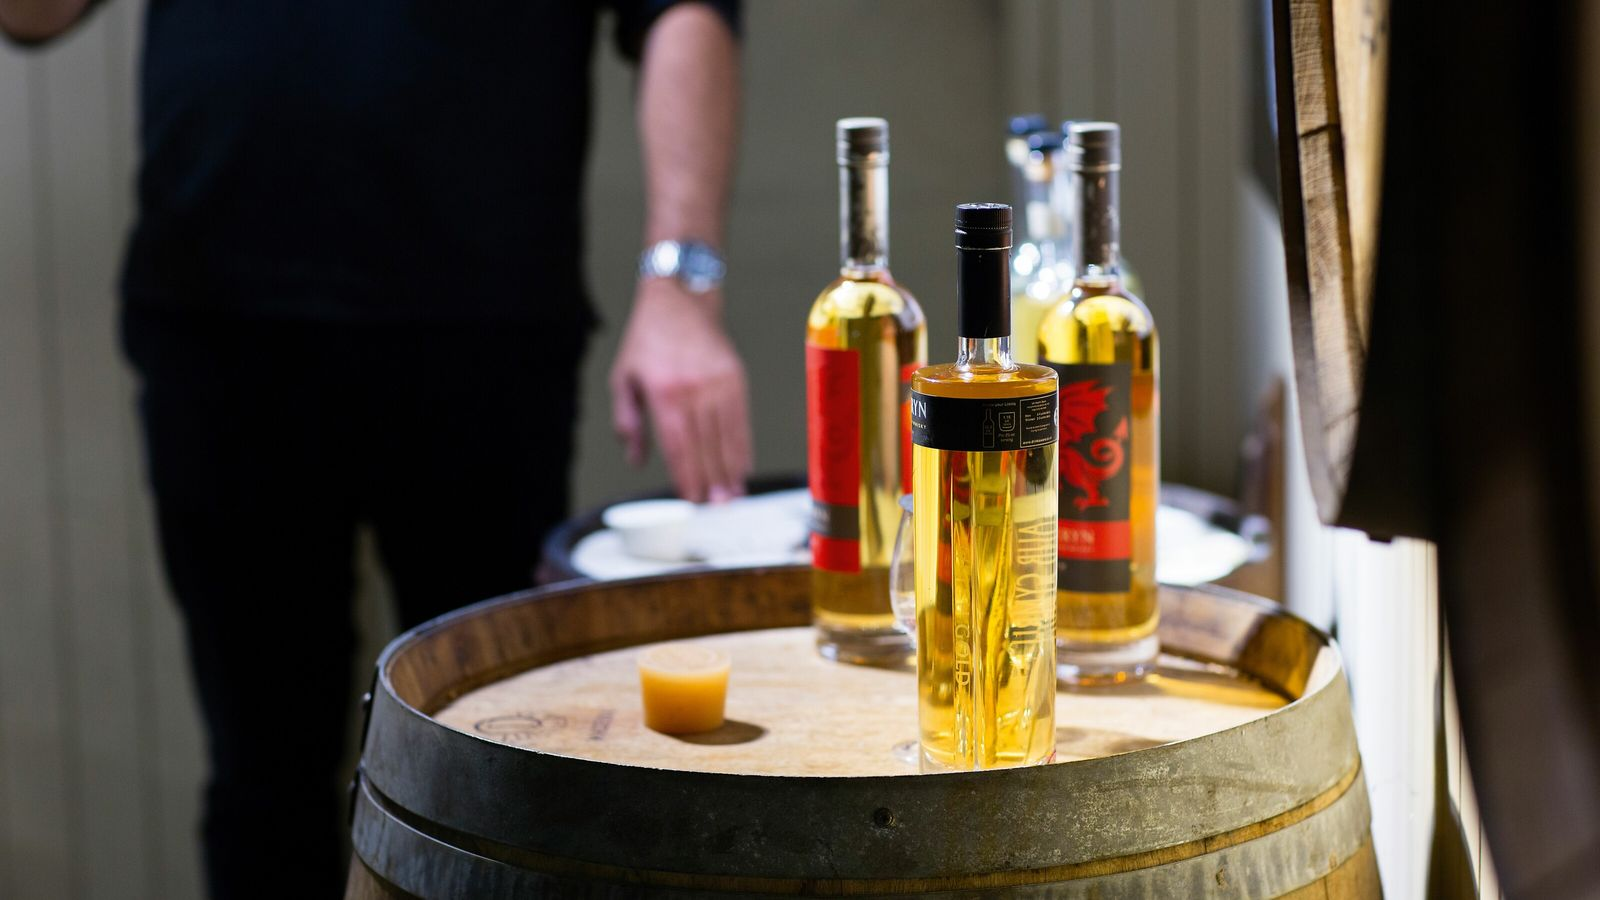 Penderyn Distillery creates distinctly Welsh single malt whiskies and spirits in the foothills of the Brecon ...